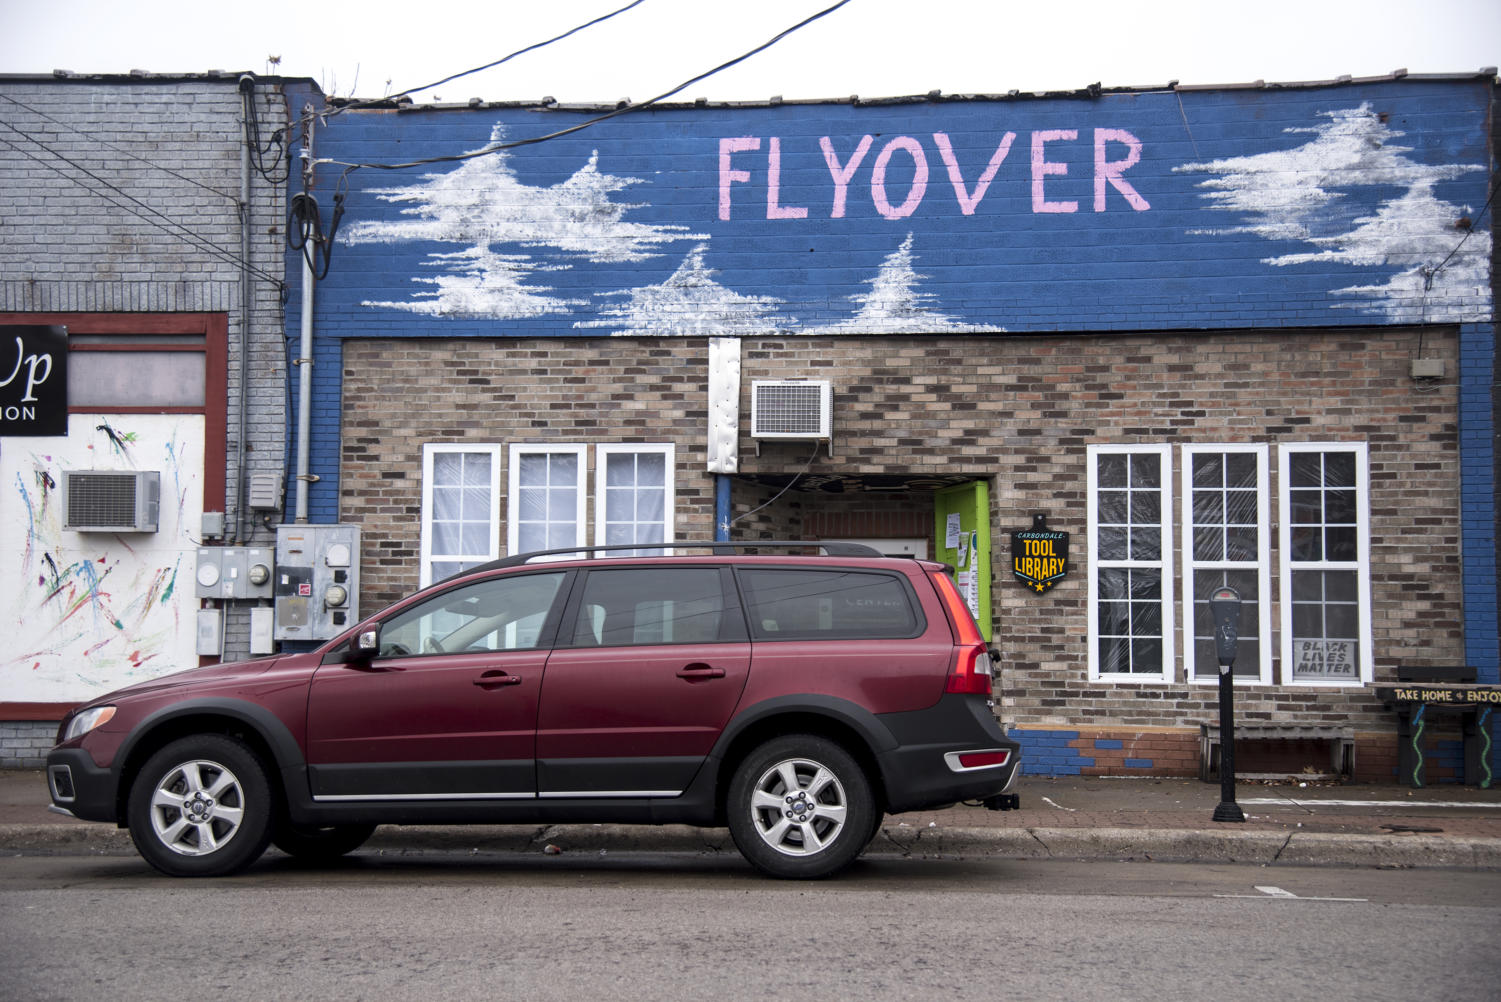 Flyover Social Center, Sunday, Jan. 21, 2018, in Carbondale, the center is a creative space for the community. (Mary Newman | @MaryNewmanDE)